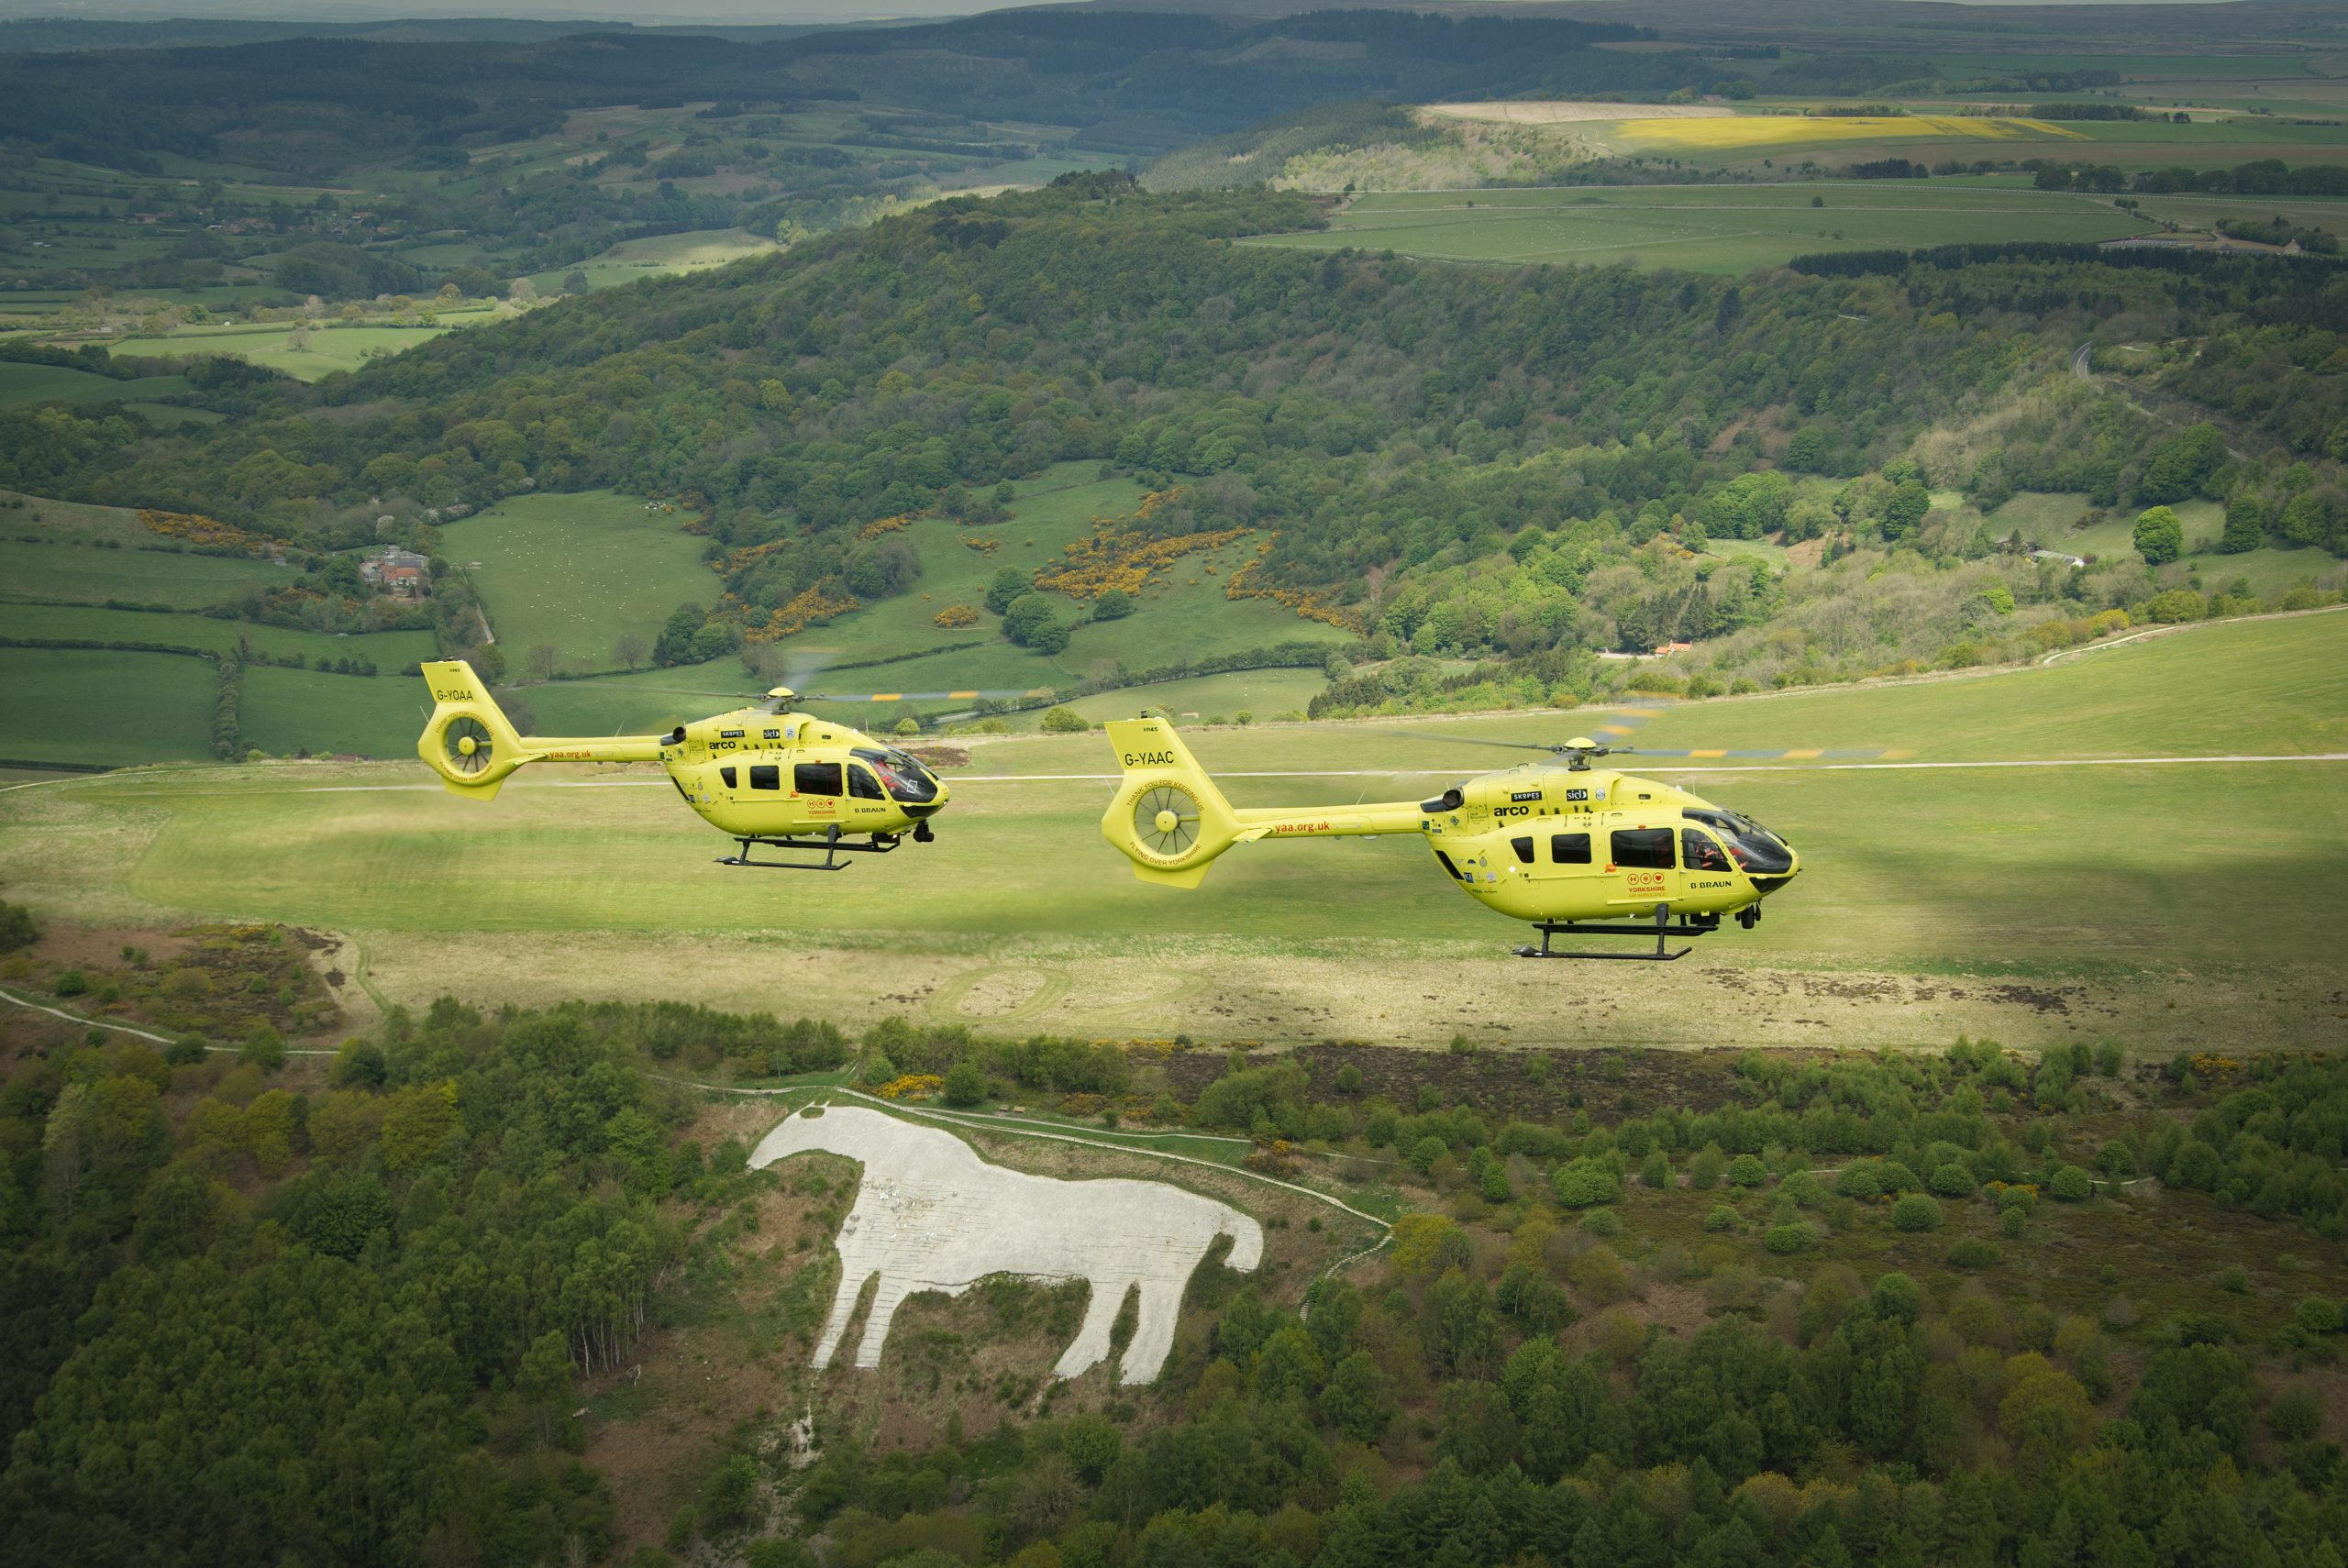 Two Helicopters and the horse